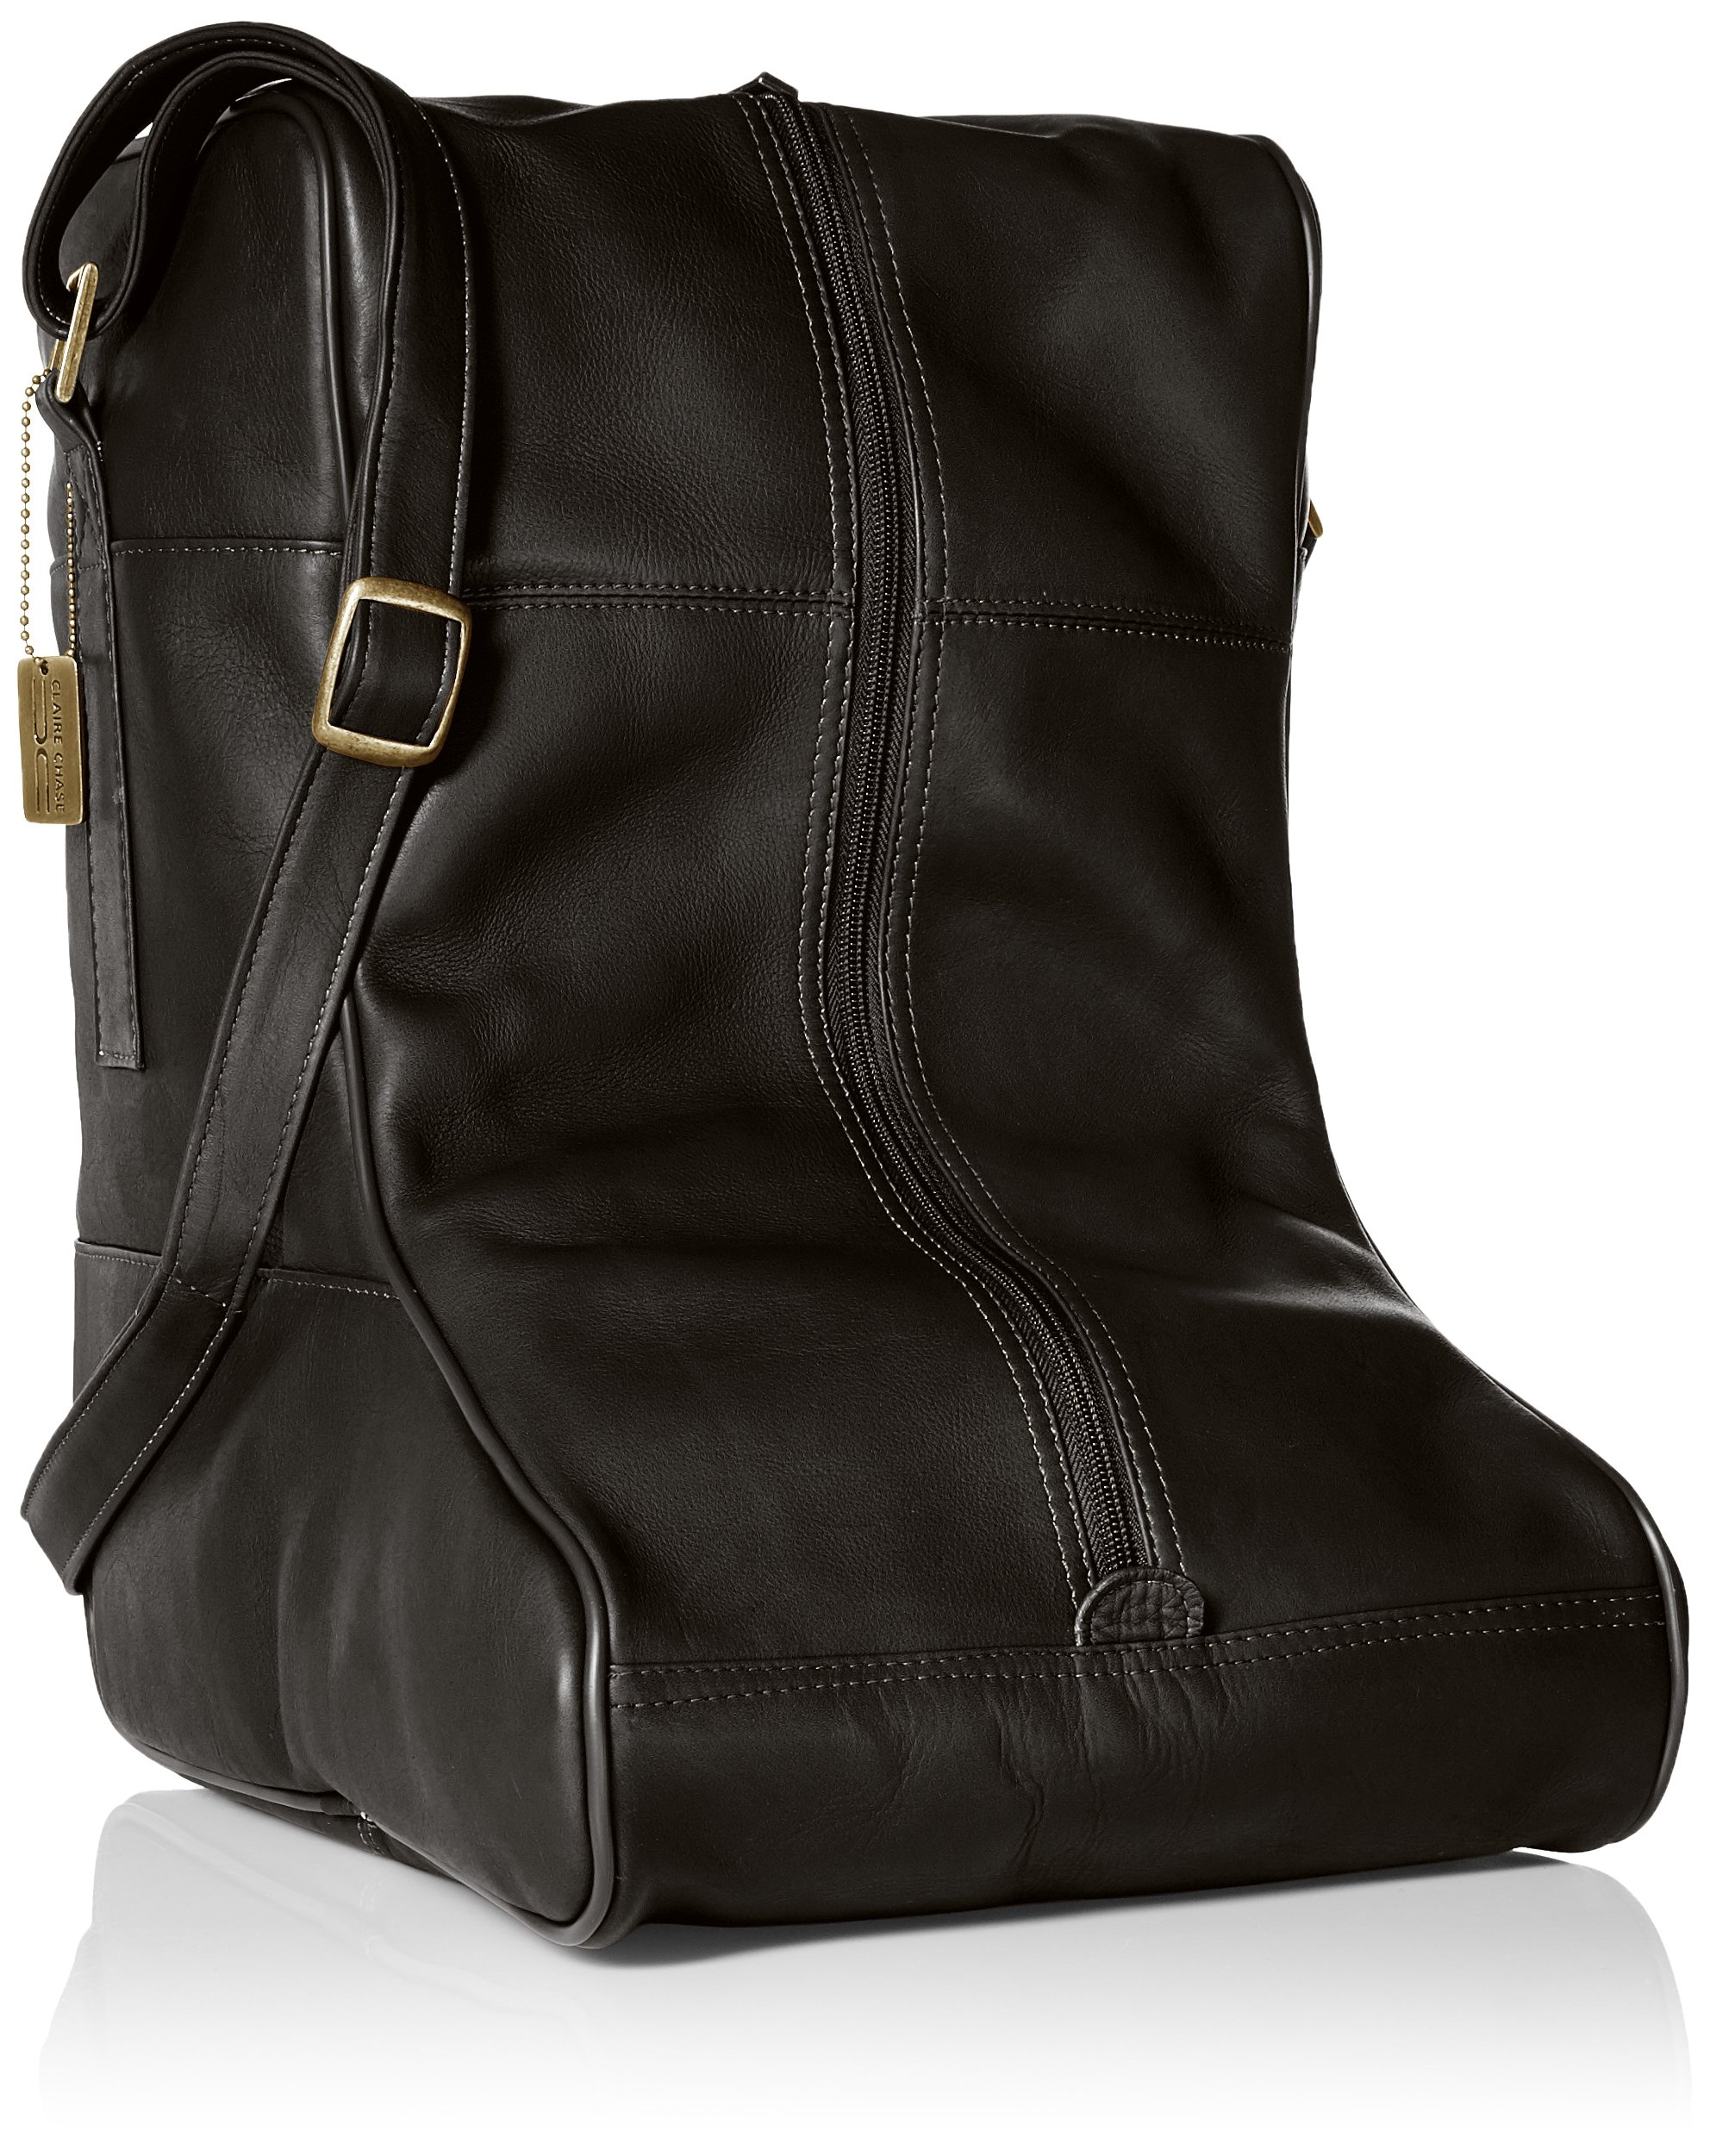 Claire Chase Ranchero Boot Bag, Black